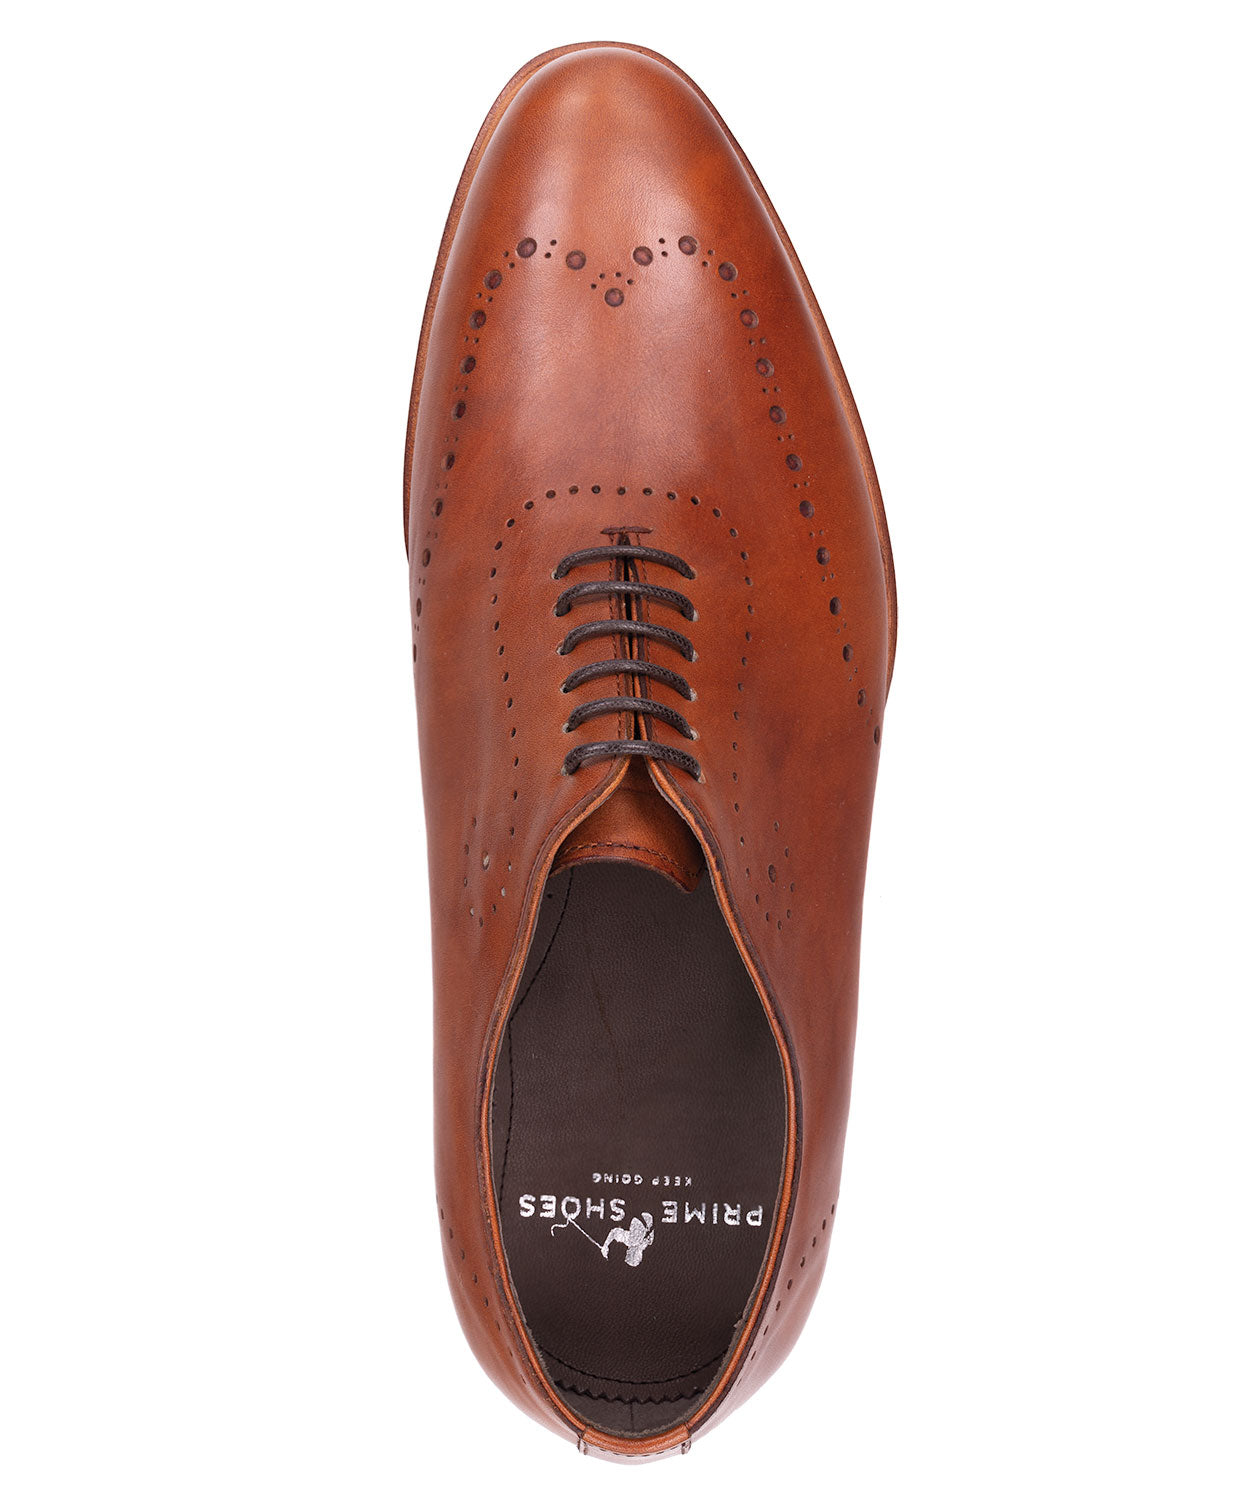 Bari Crust Cognac Dress Shoe